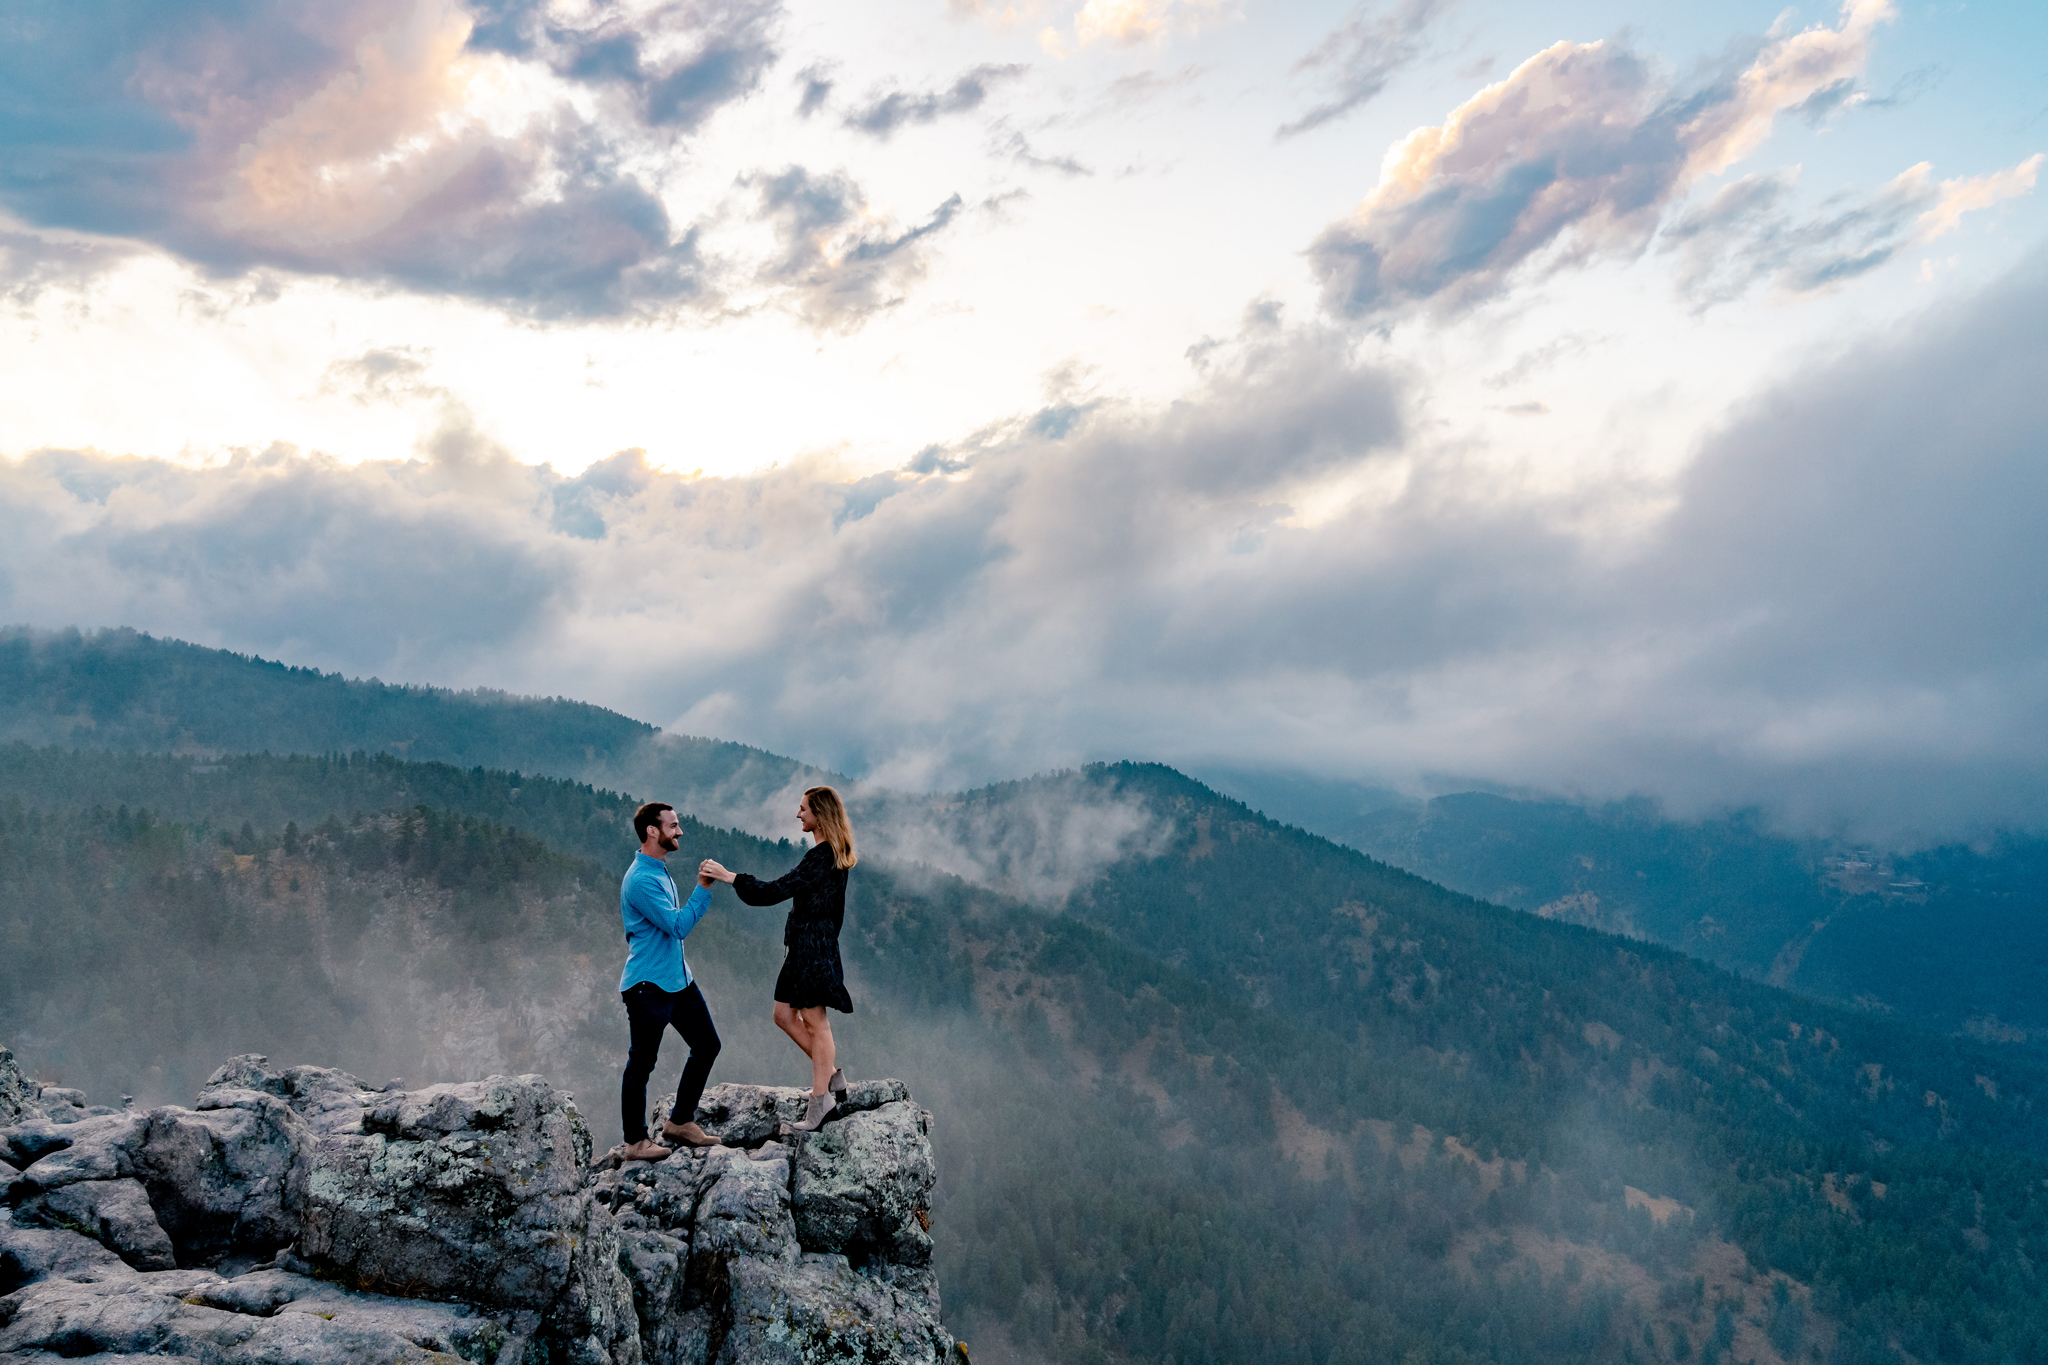 Claire & Seth's Colorado Mountain Engagement Session by Colorado Wedding Photographer, All Digital Photo & Video. Colorado Engagement Photographer, Colorado Engagement Photo, Colorado Engagement, Engagement Photography